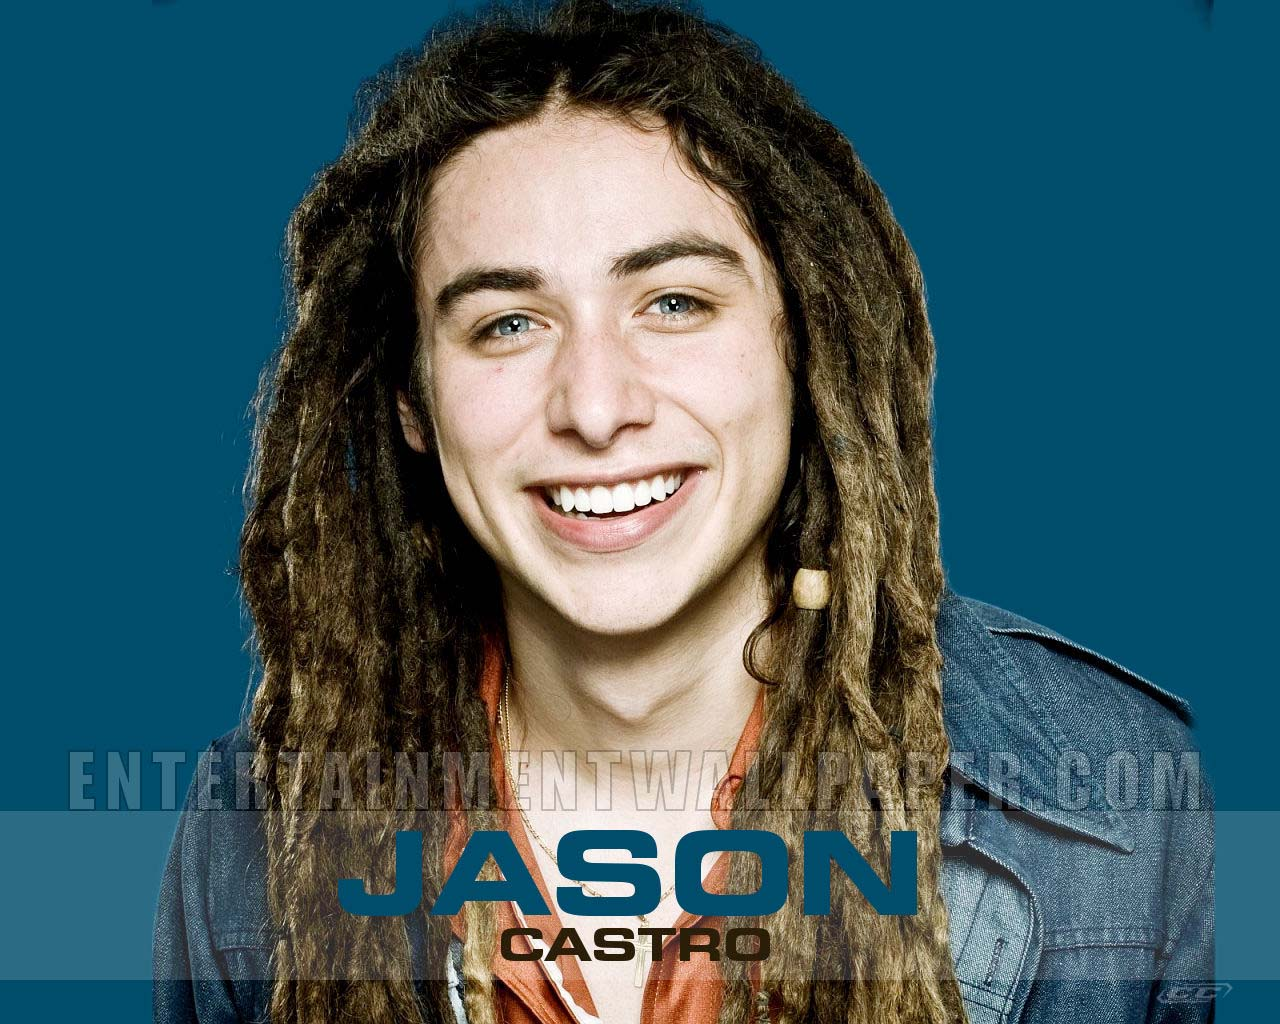 Jason Castro - Only A Mountain 2013 Biography and history